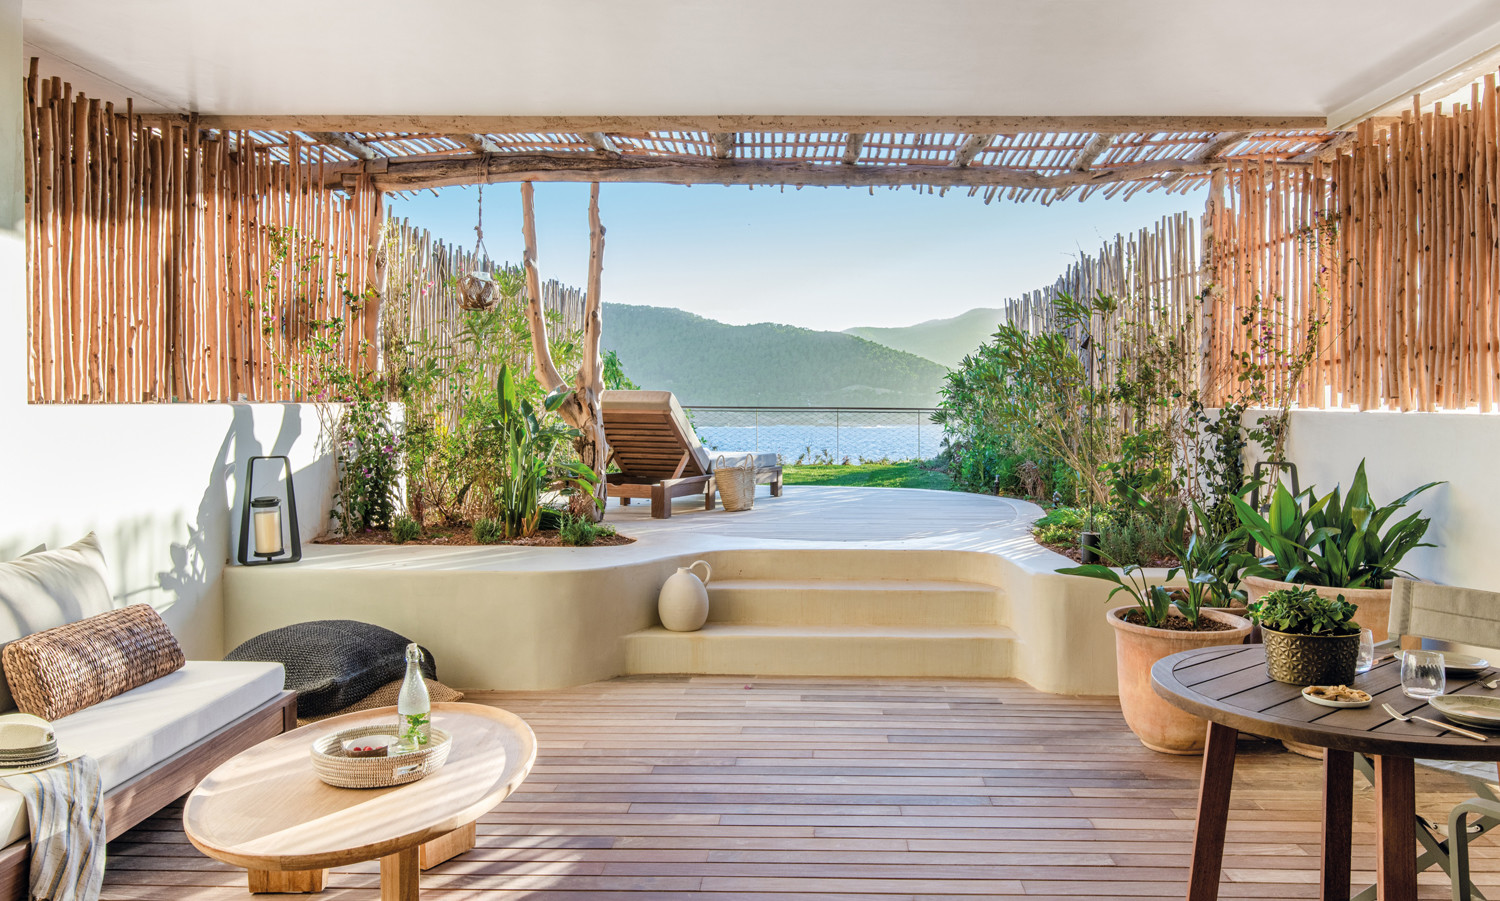 news-main-six-senses-ibiza-to-offer-authentic-experiences-in-hidden-paradise-of-xarraca-bay-from-july-2021.1616678645.jpg